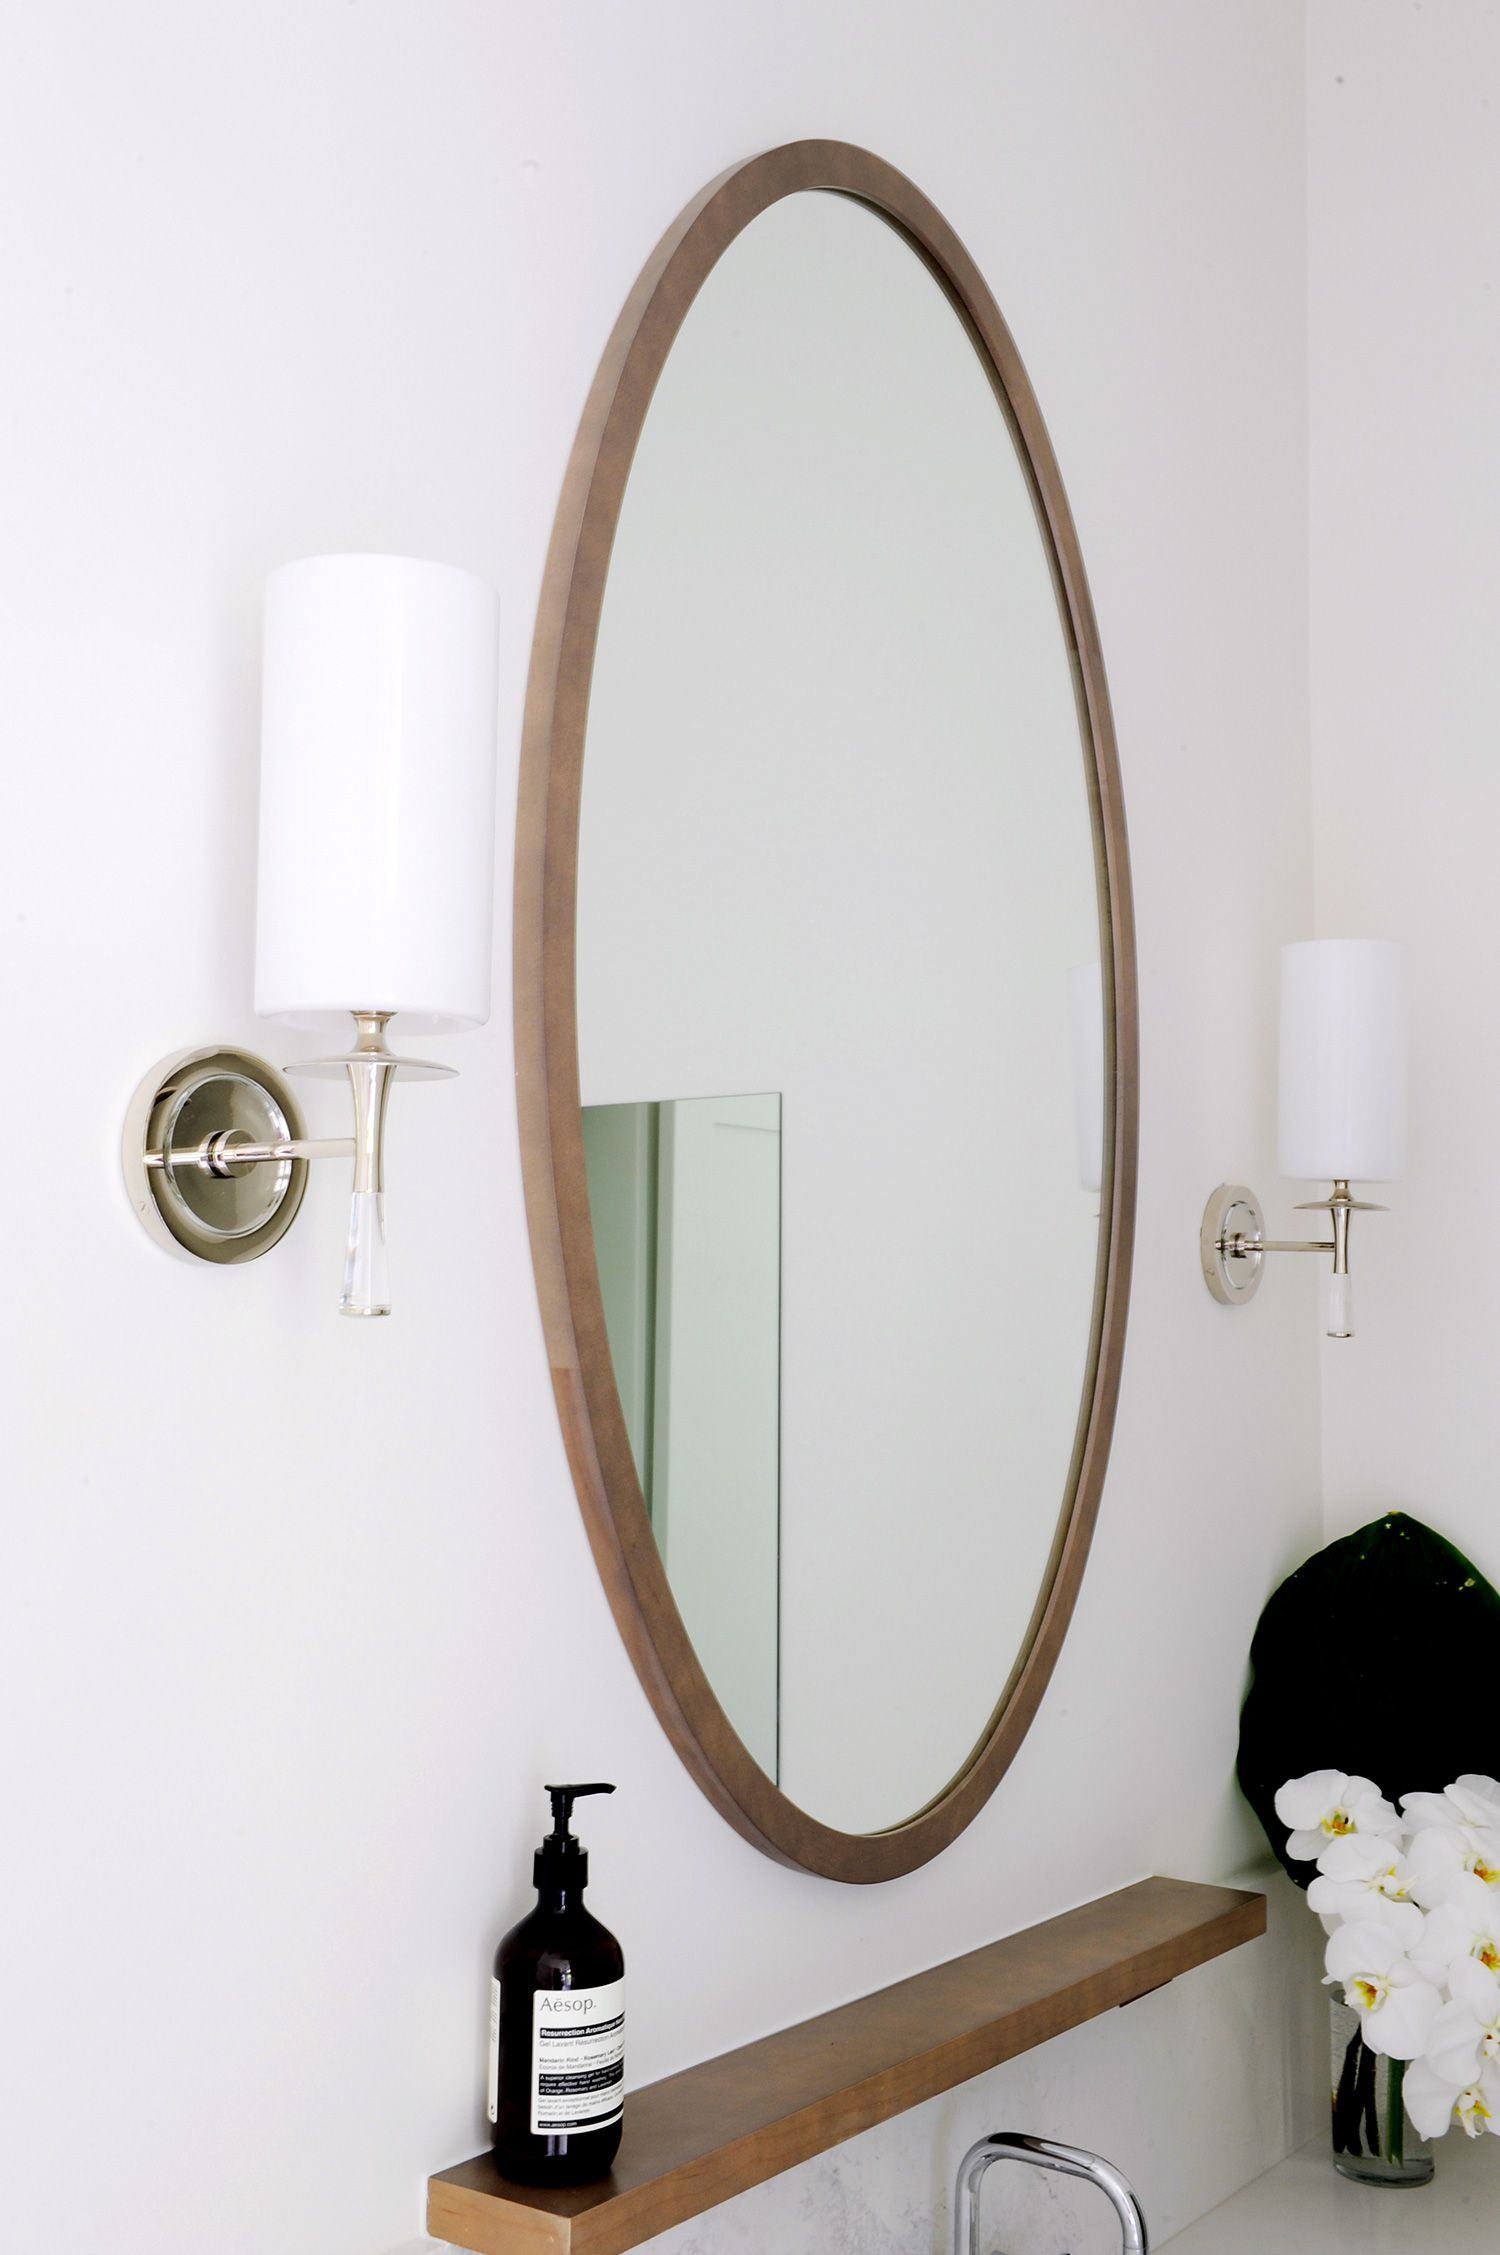 Round Wood Oversized Mirror In Bathrrom With Images Round